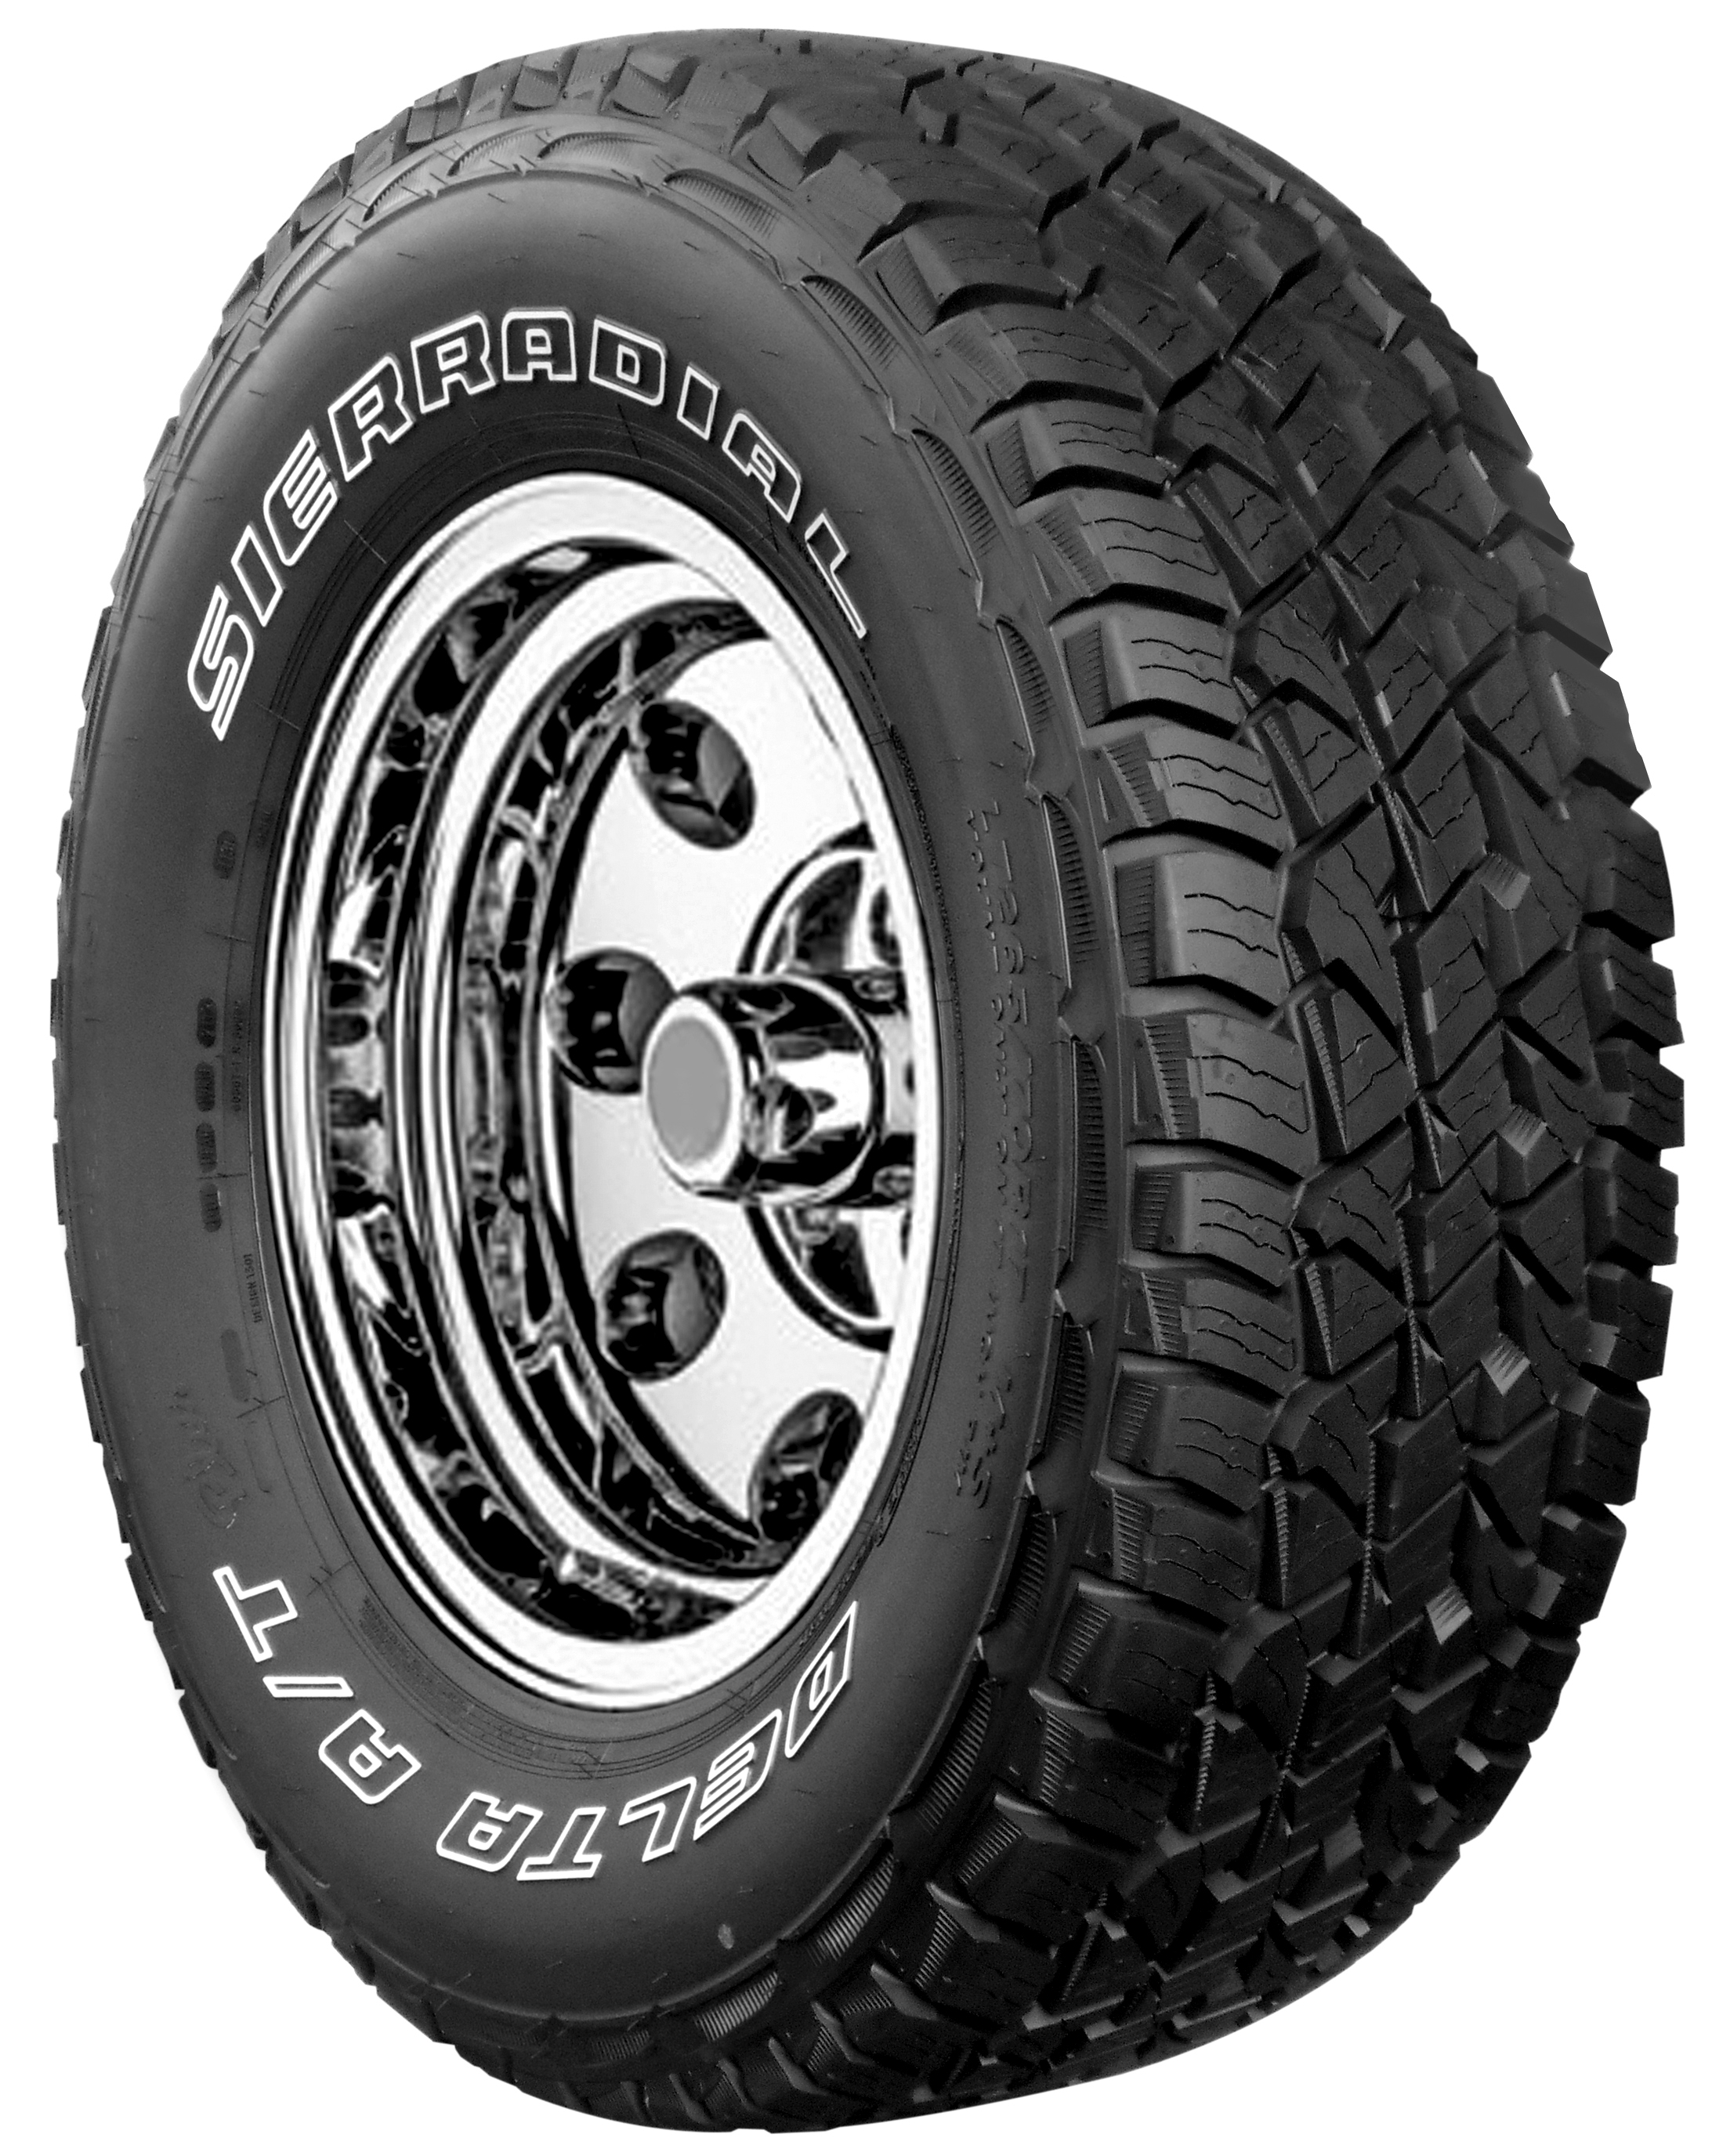 Del-Nat Tire launches AT Plus SUV/LT tire